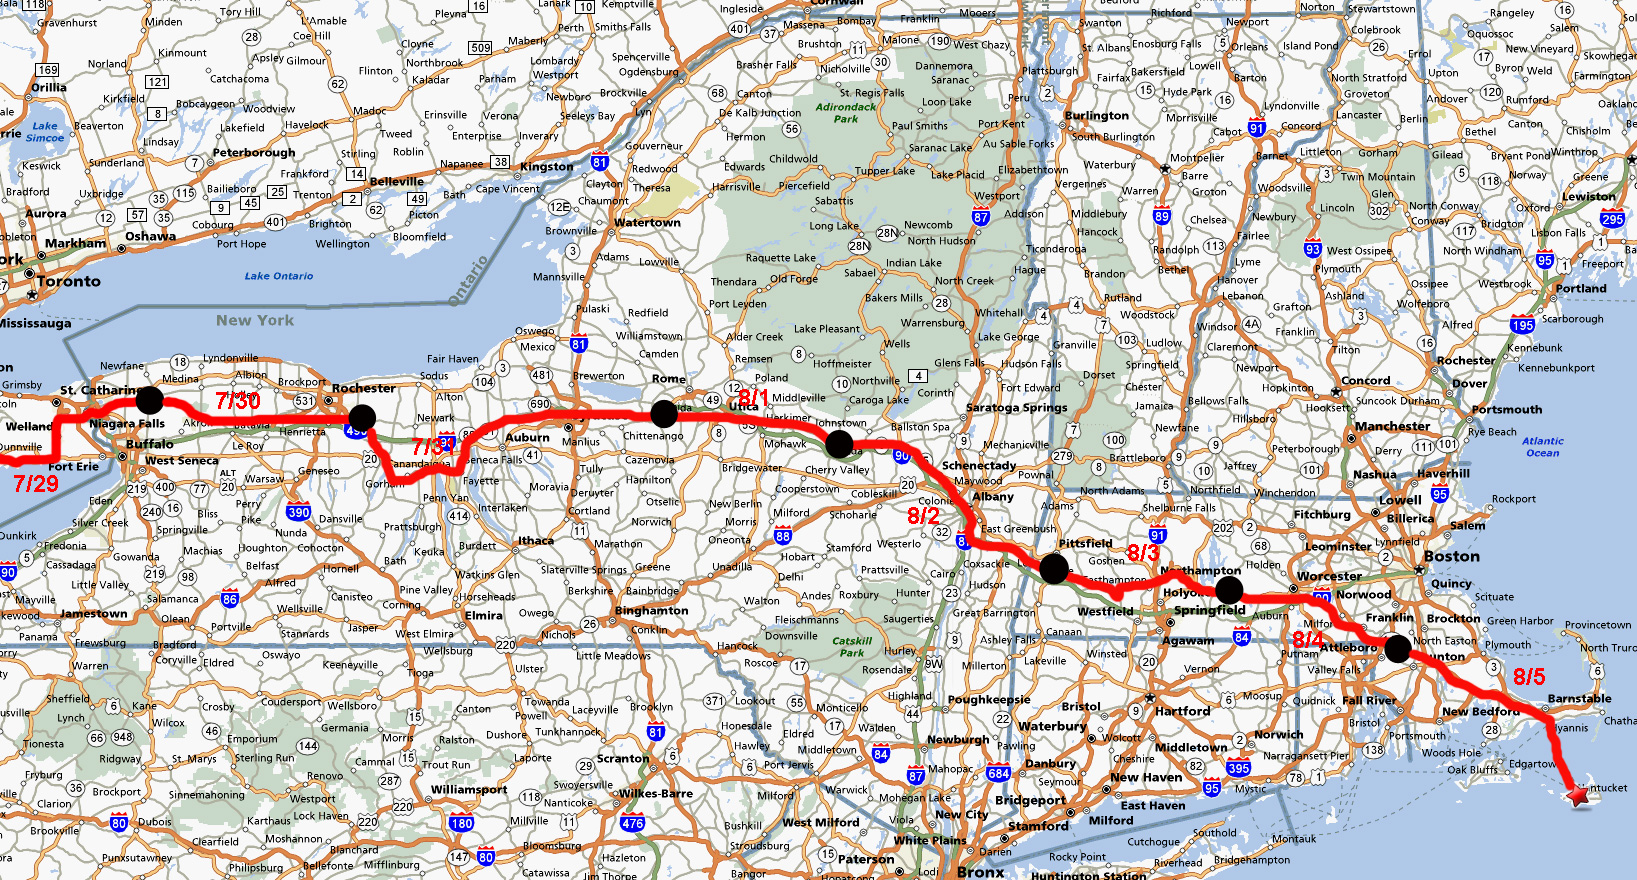 Northeastern States Road Map Shell Highway Map Northeastern Road Map Northeastern Us